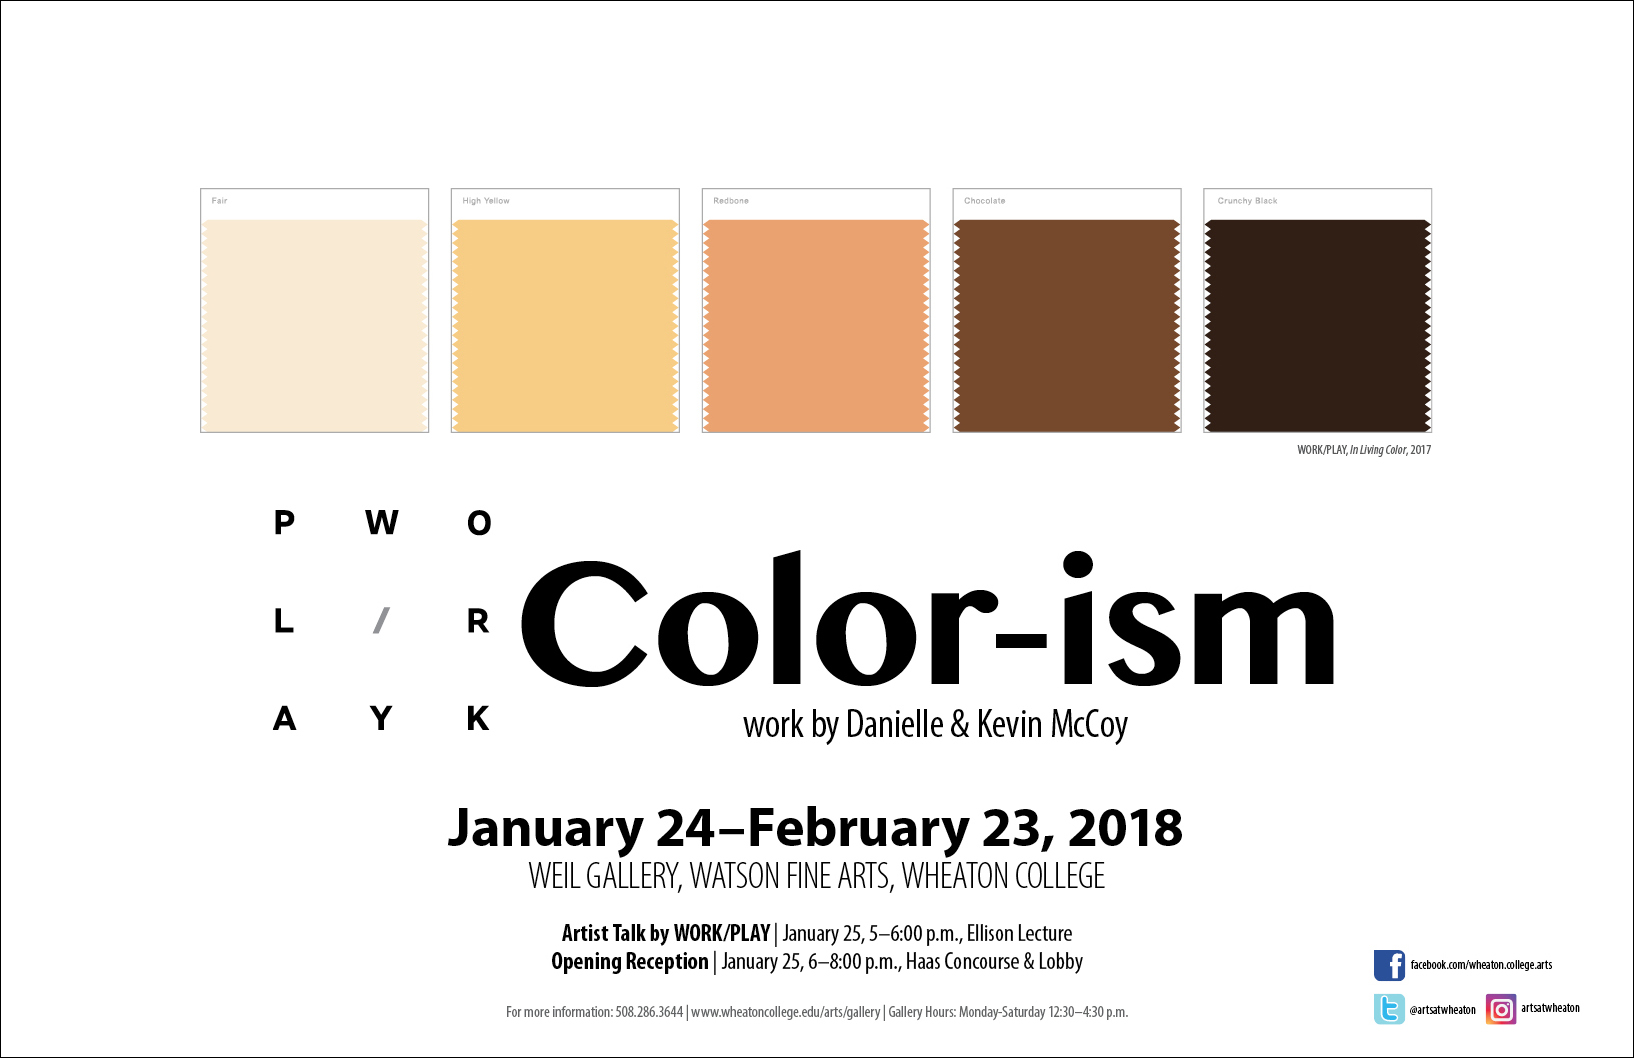 Gallery Exhibition—Work/Play: Color-ism - Wheaton College Massachusetts